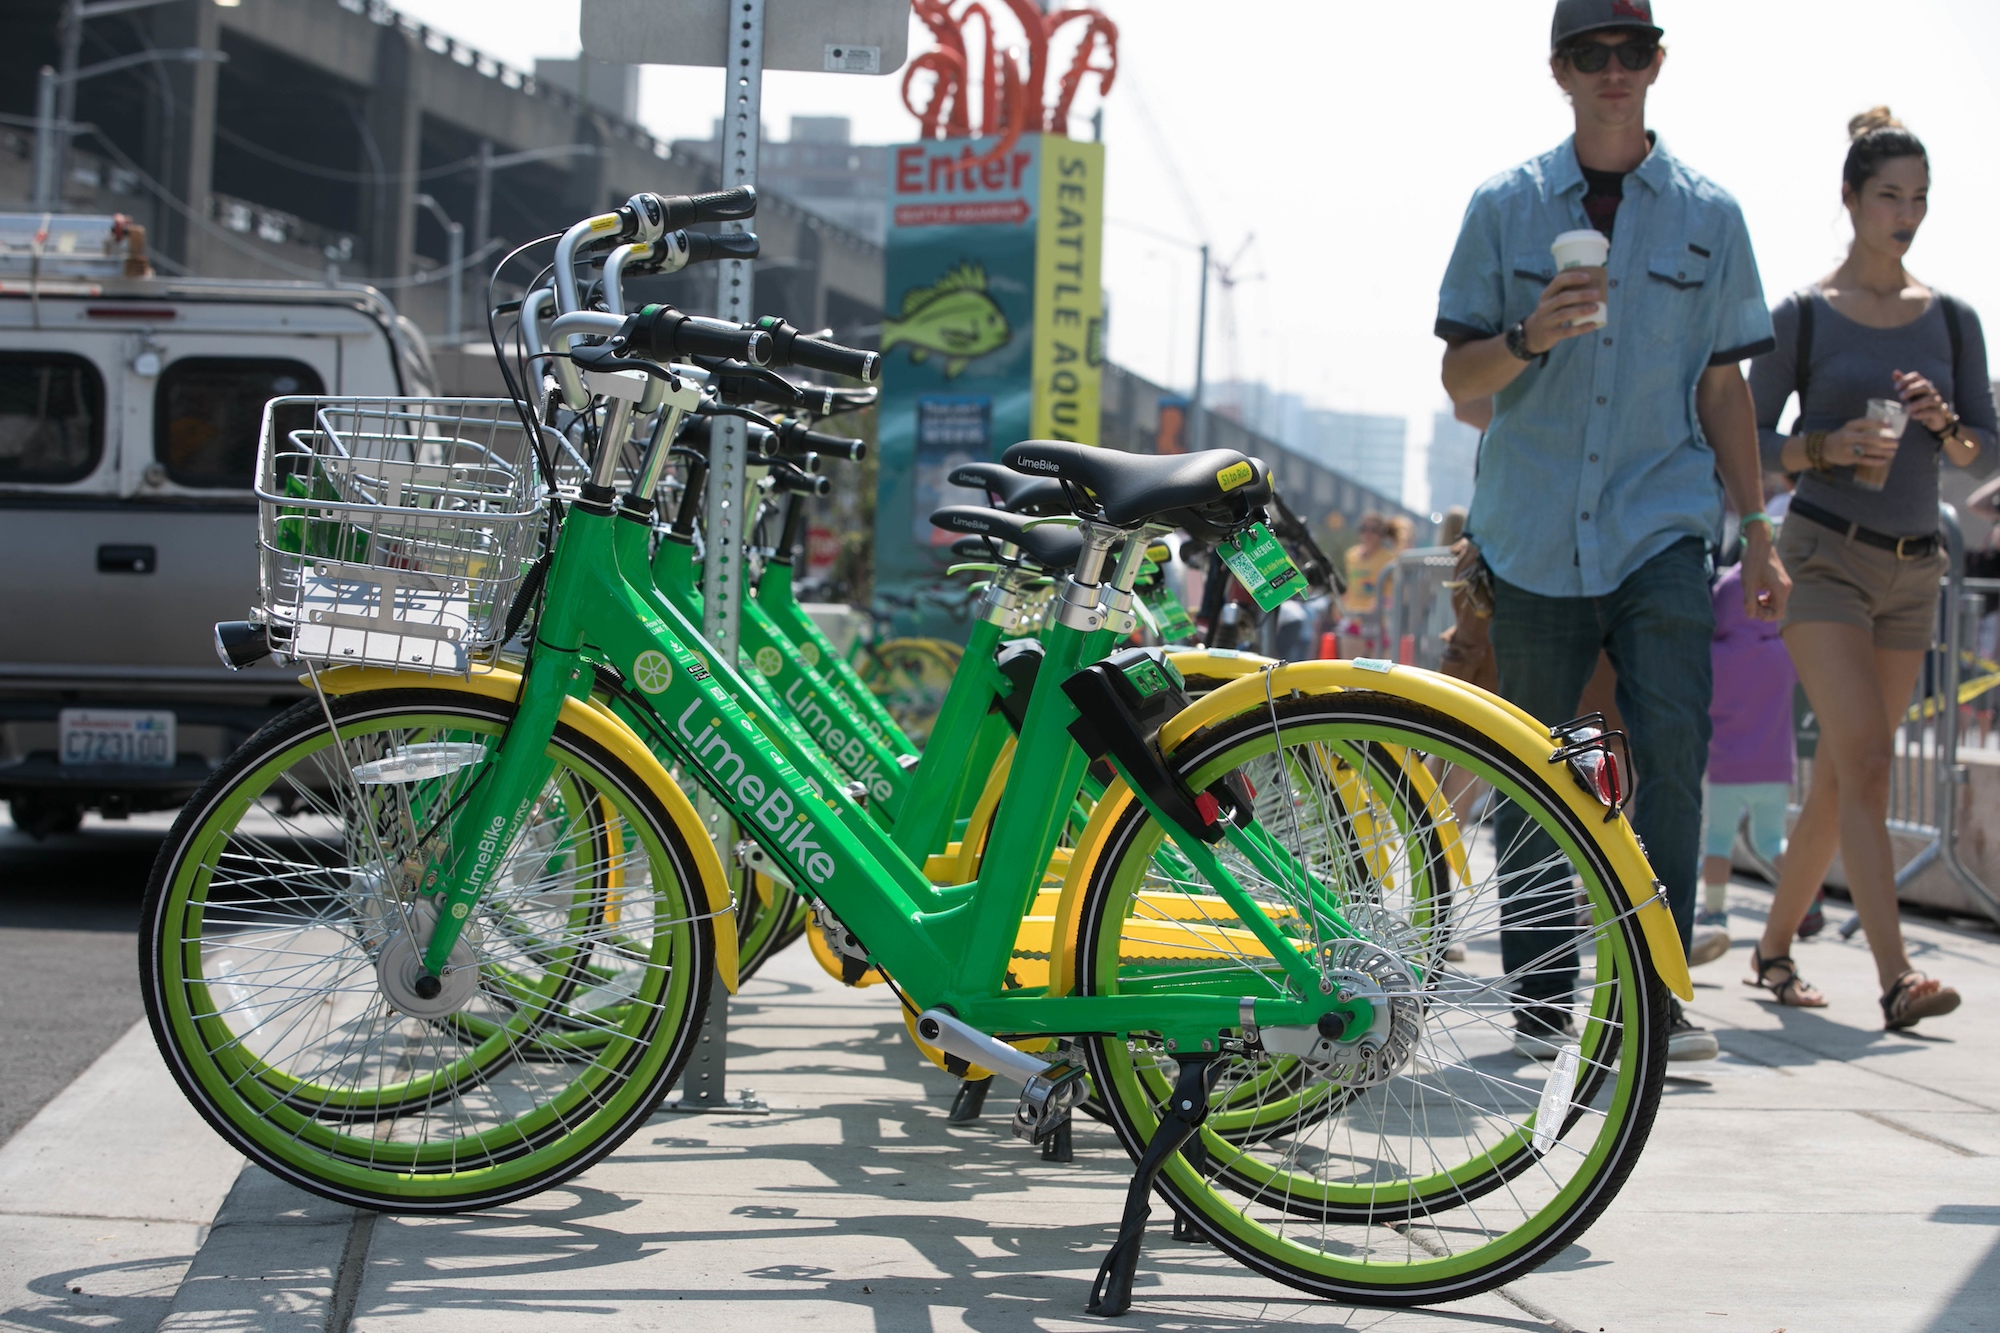 LimeBike bikeshare bicycles along Alaskan Way waterfront in downtown Seattle, Washington on Tuesday, August 8, 2017.